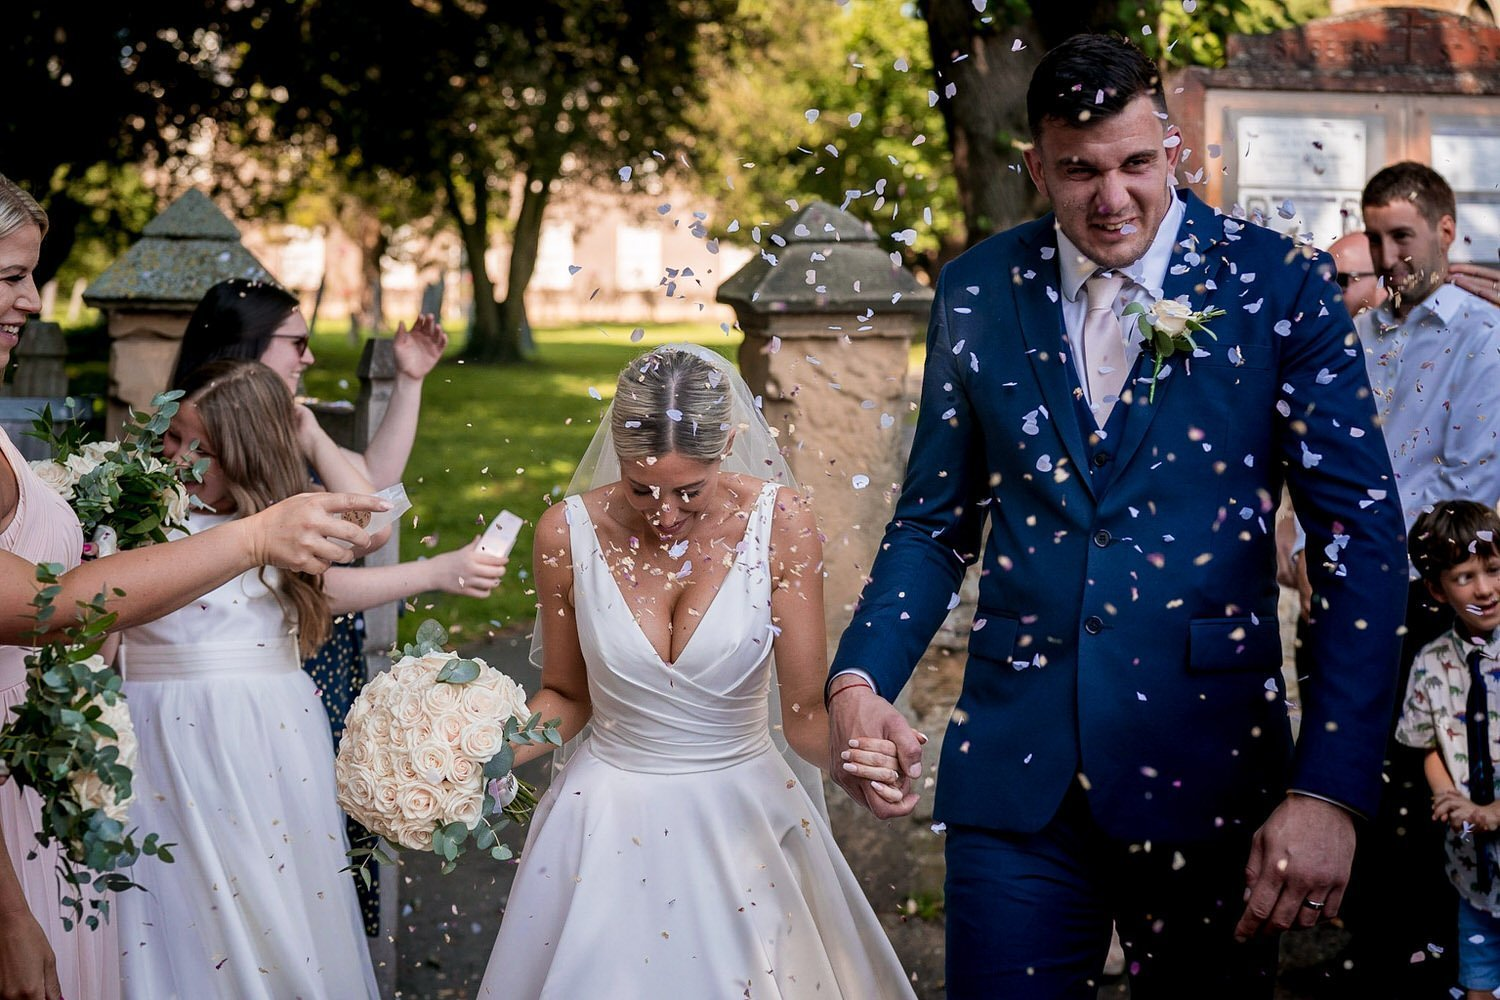 Great Bowden Parish Church Lockwood Weddings Photography bride and groom showered in confetti